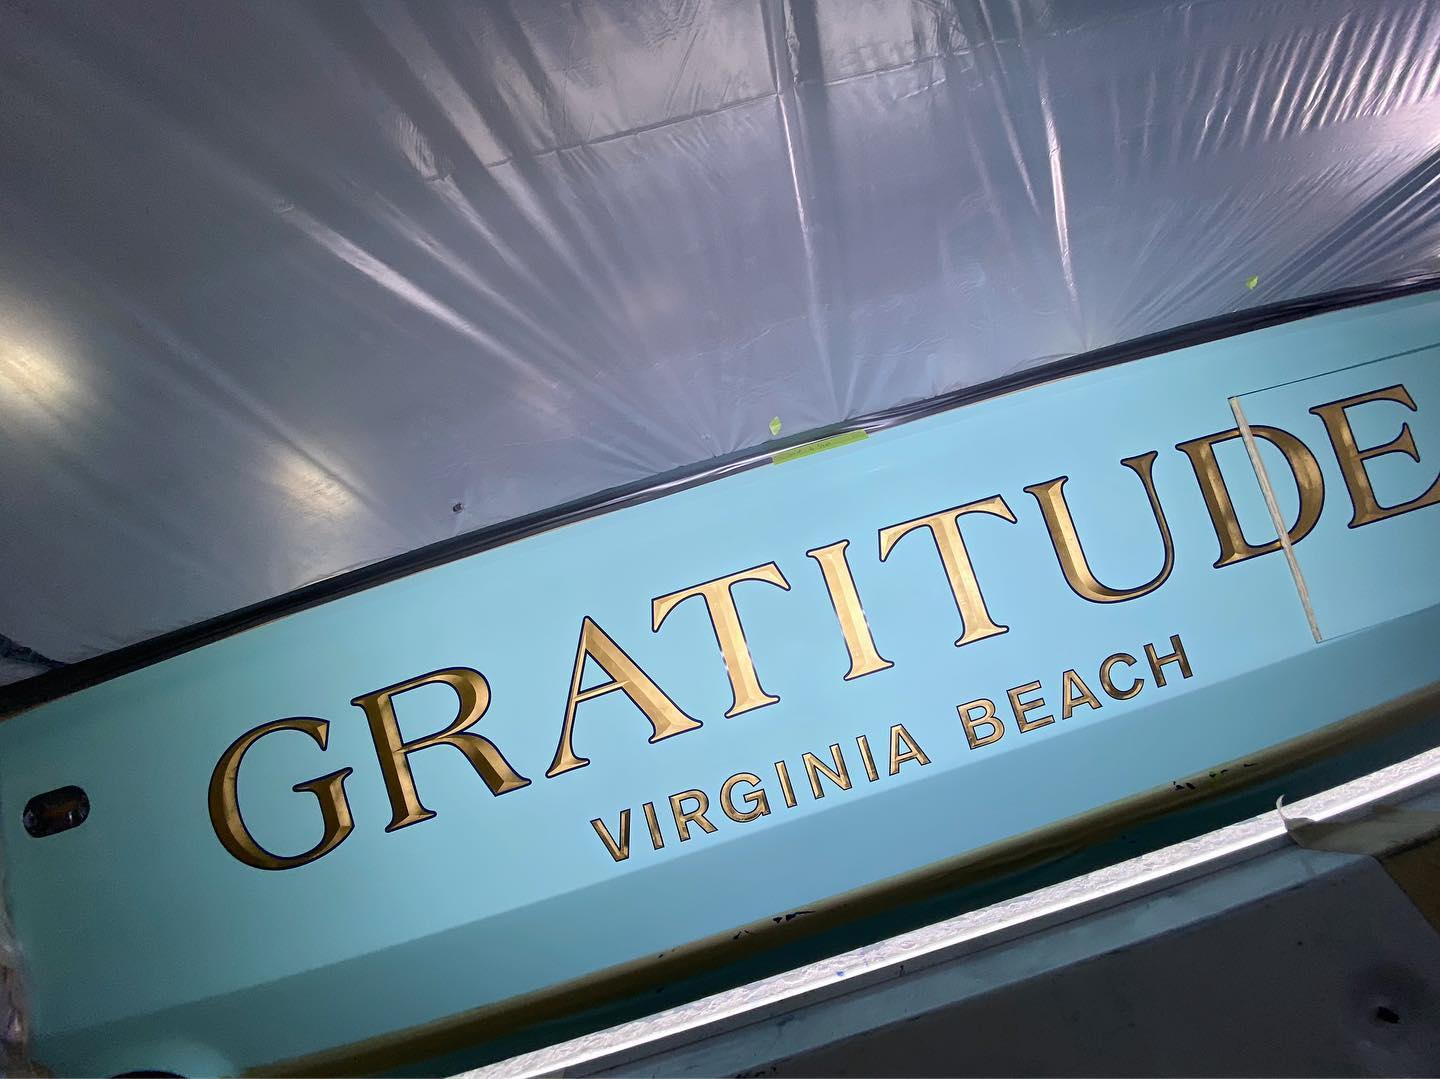 """""""Gratitude"""" a brand new 60' Spencer features our 23k yellow gold headline and hailing port characters in our bevel style with blue outlines. Their slogan: """"Gratitude changes everything."""""""